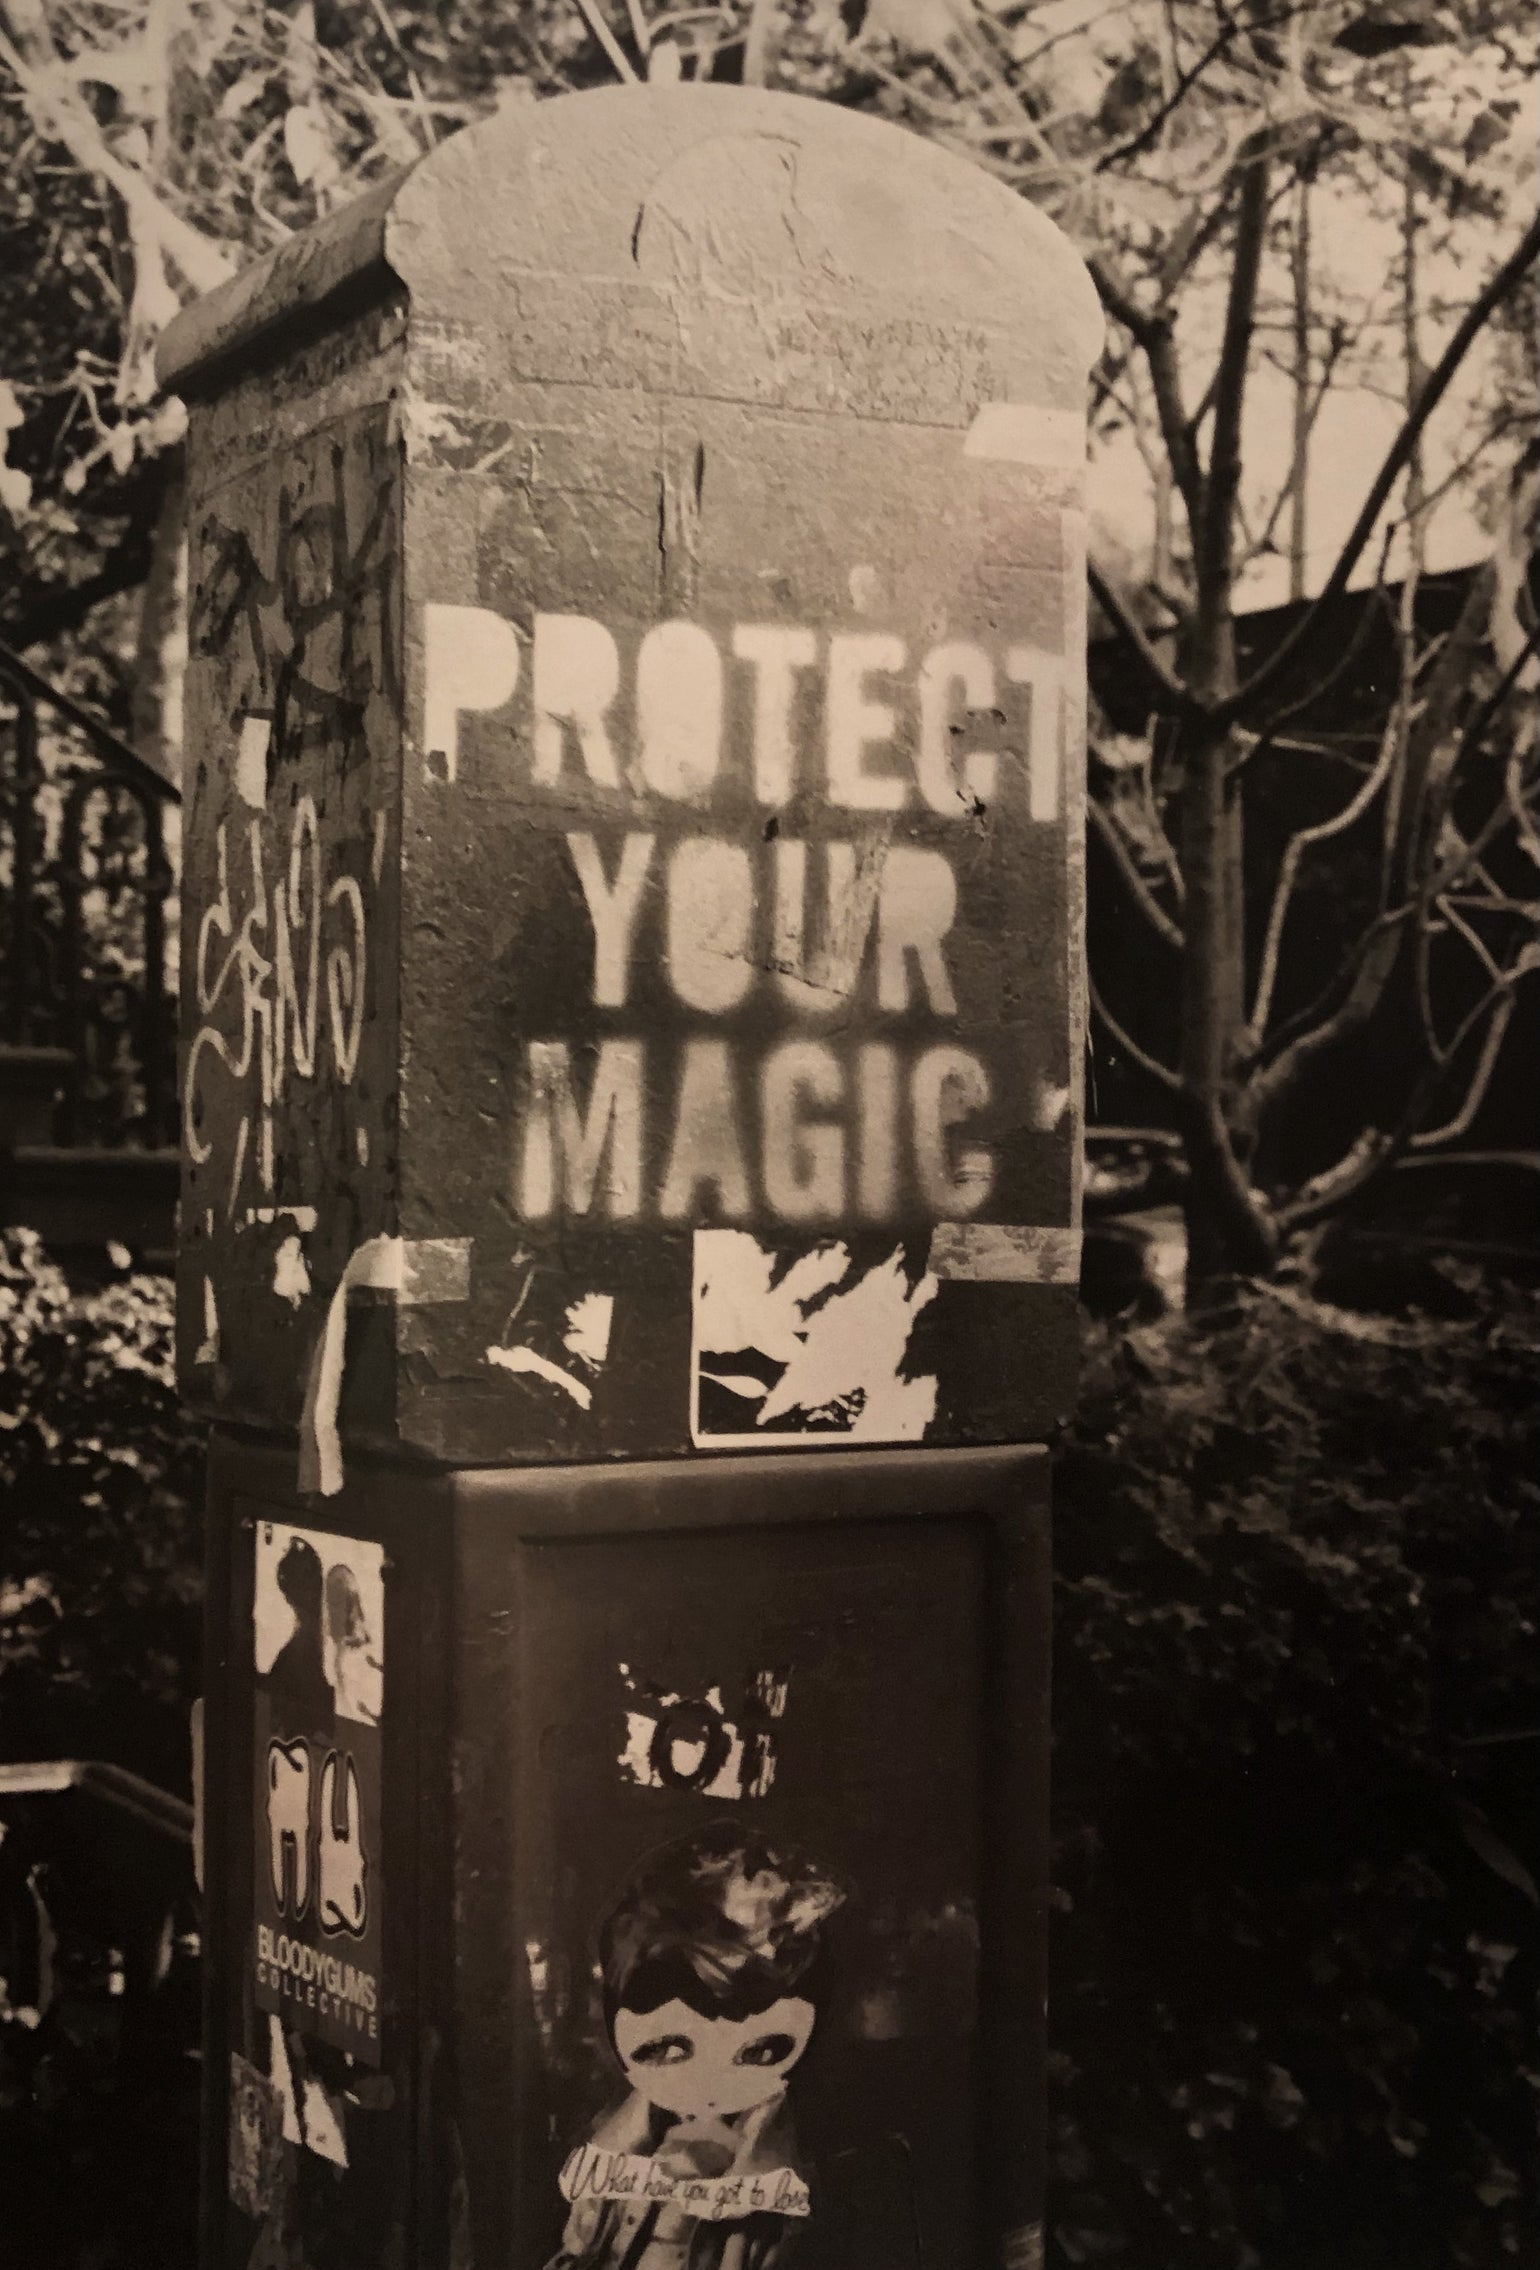 Image of Protect Your Magic